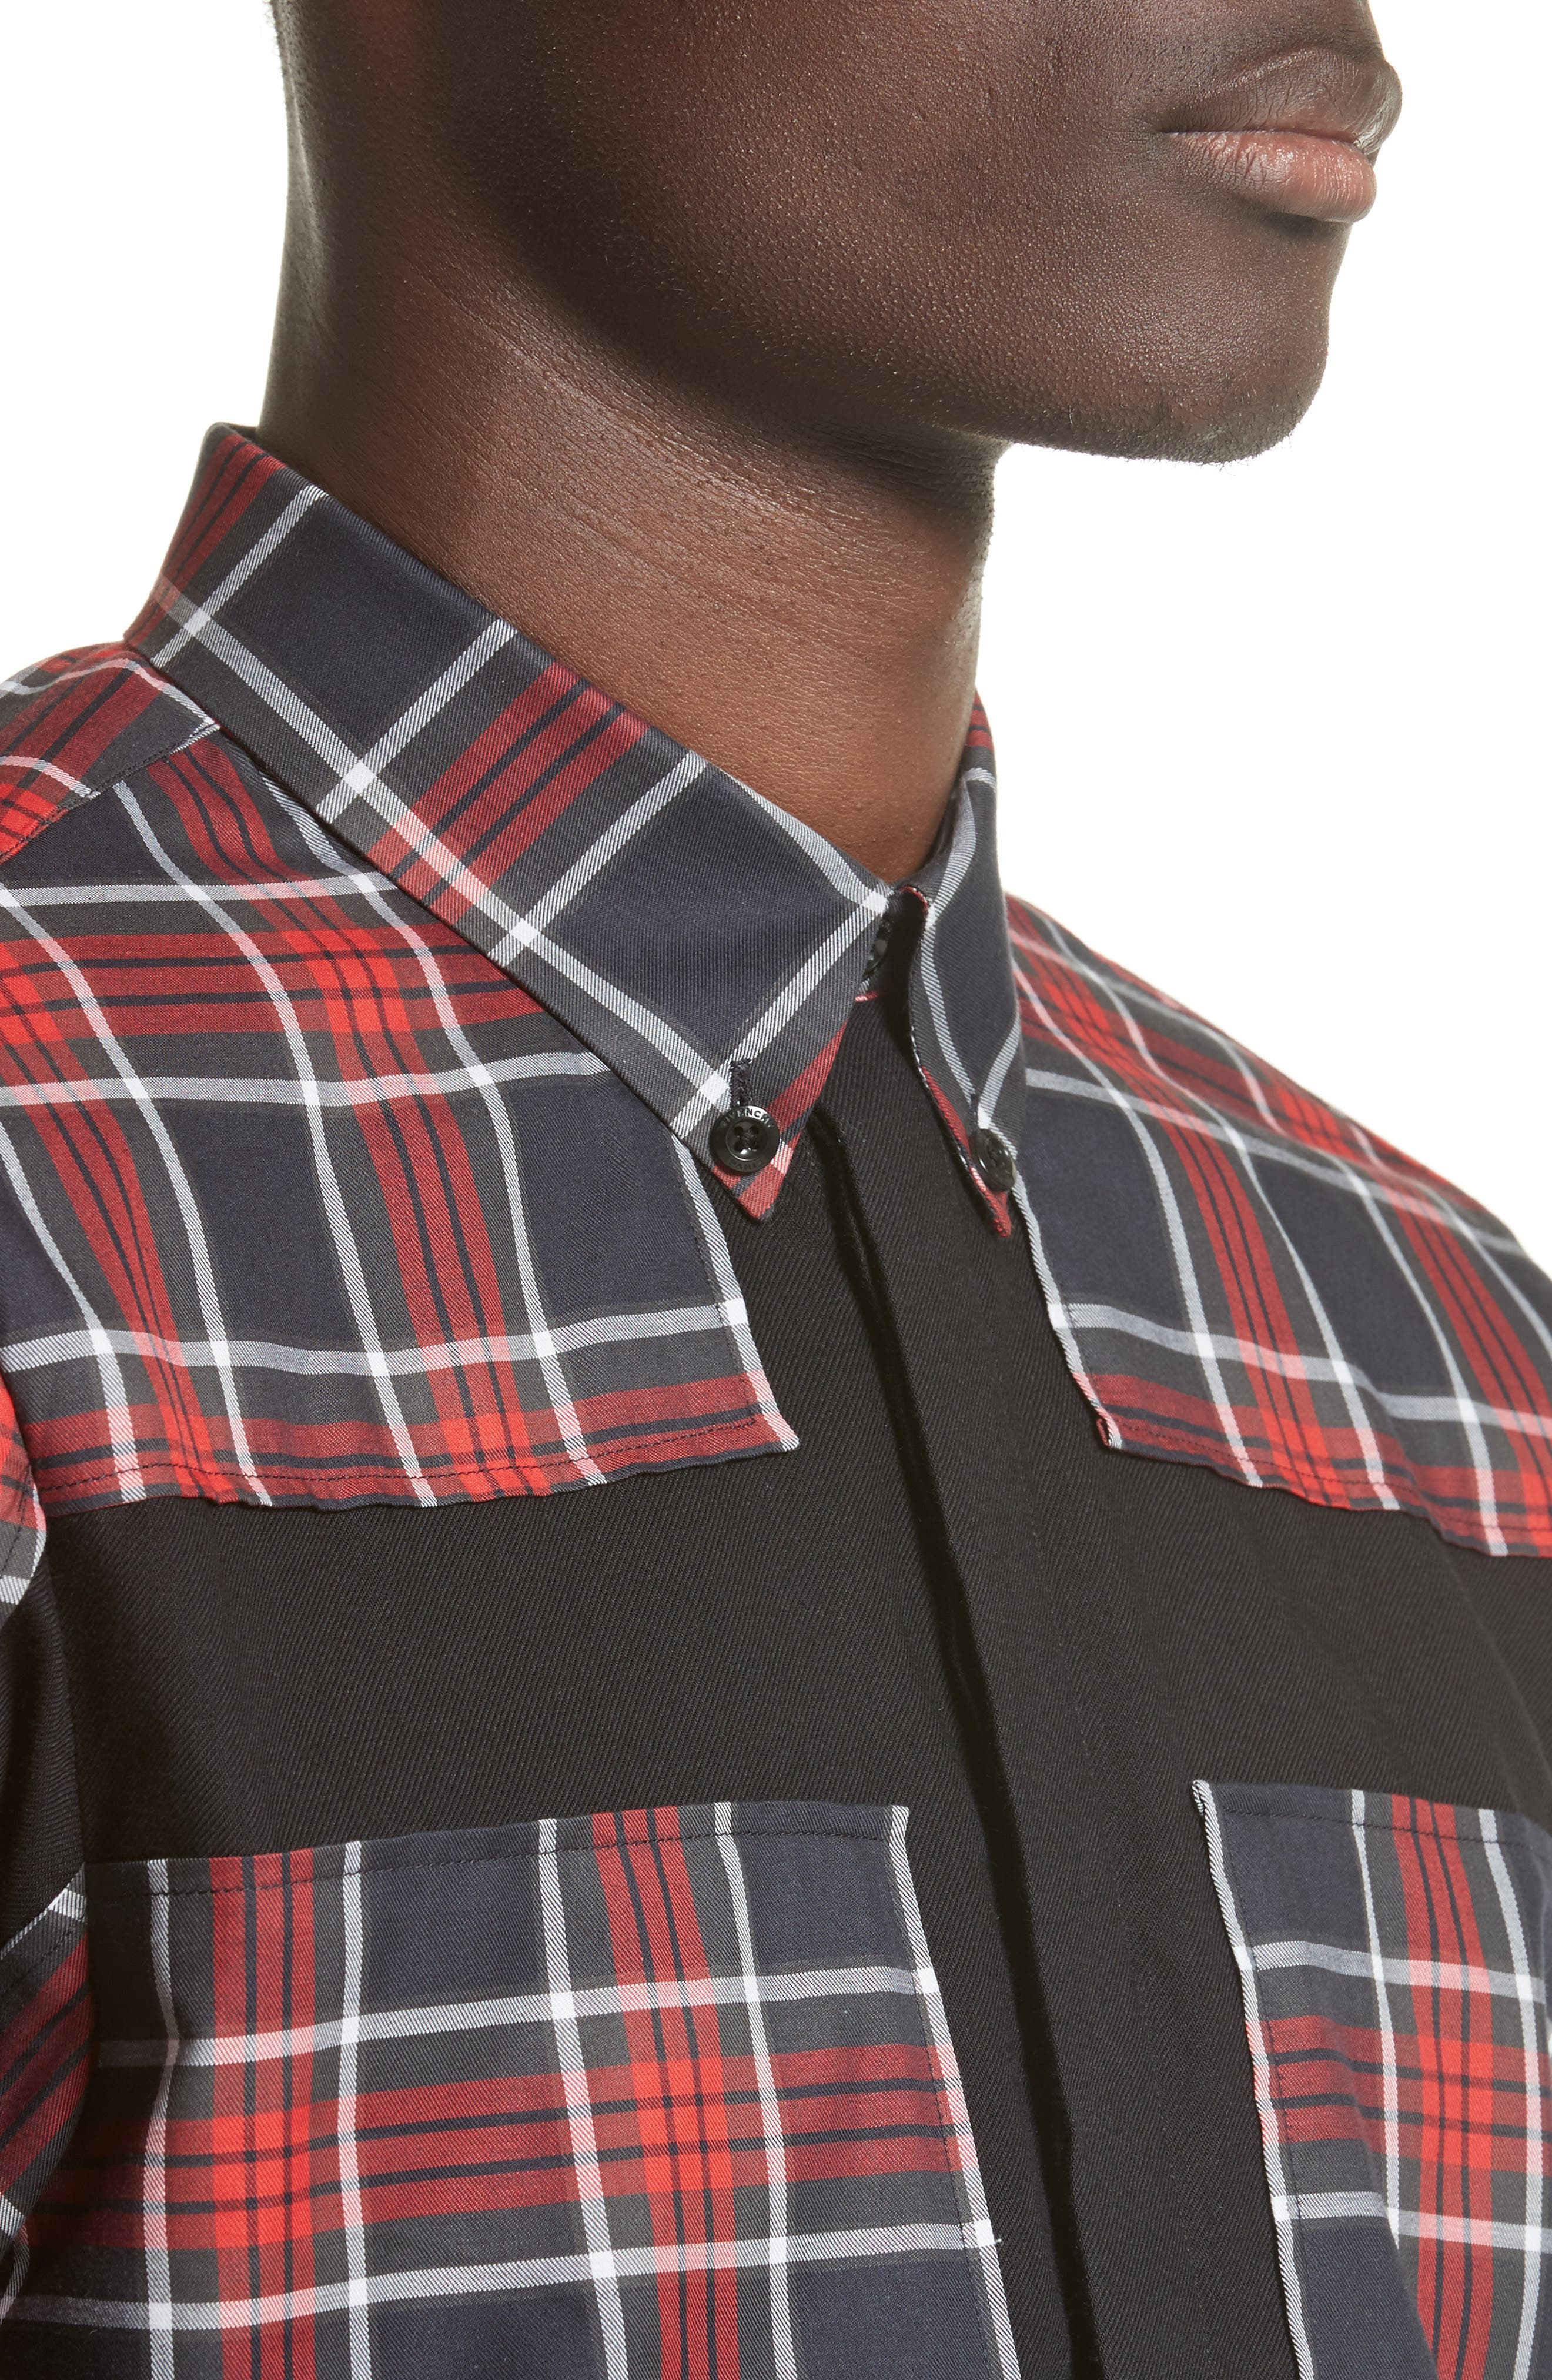 Panel Check Sport Shirt,                             Alternate thumbnail 4, color,                             Red